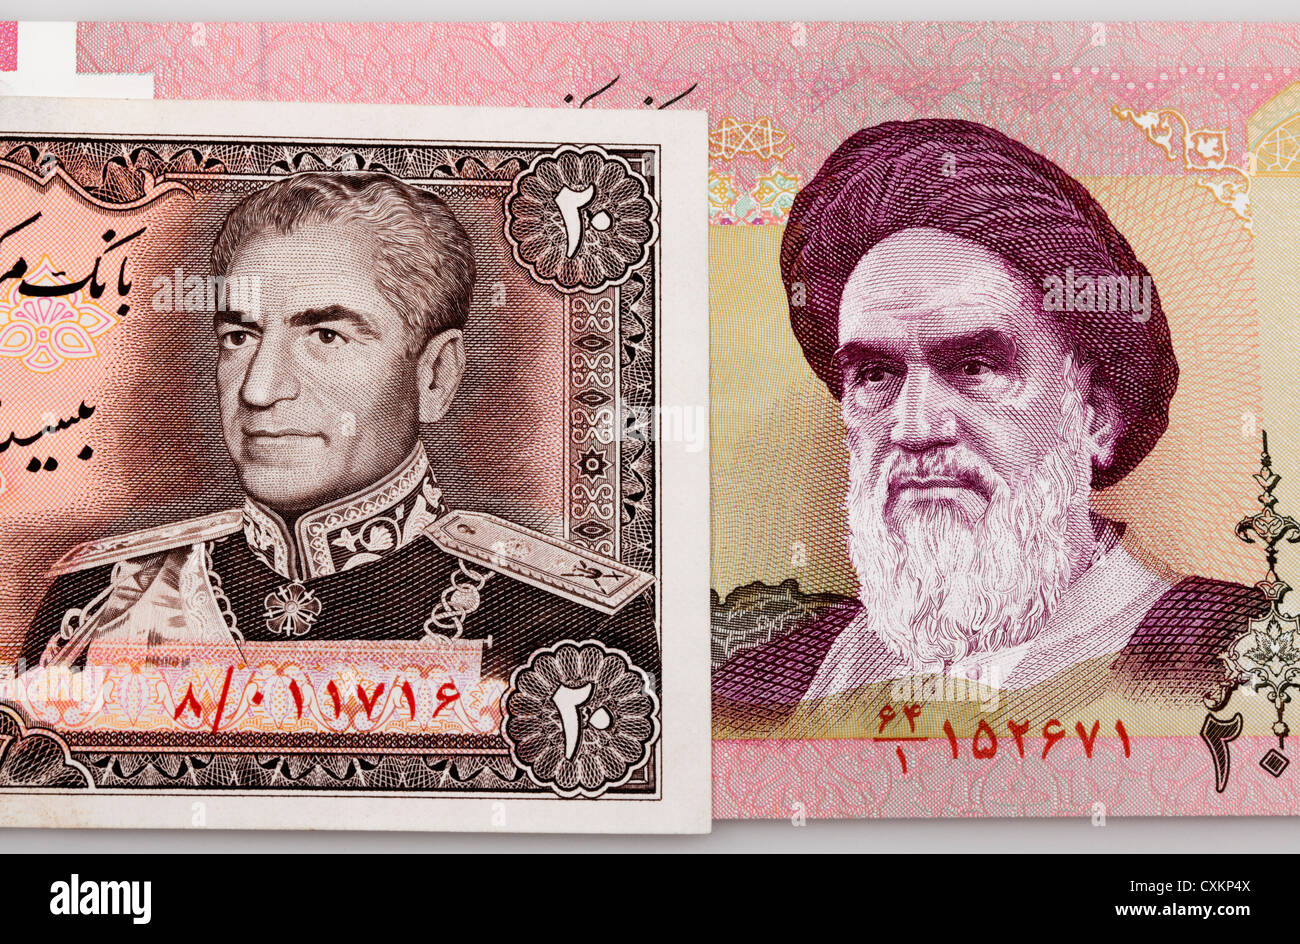 historic bank notes from Iran with portraits of Shah Mohammad Reza Pahlavi and Ruhollah Khomeini, Stock Photo